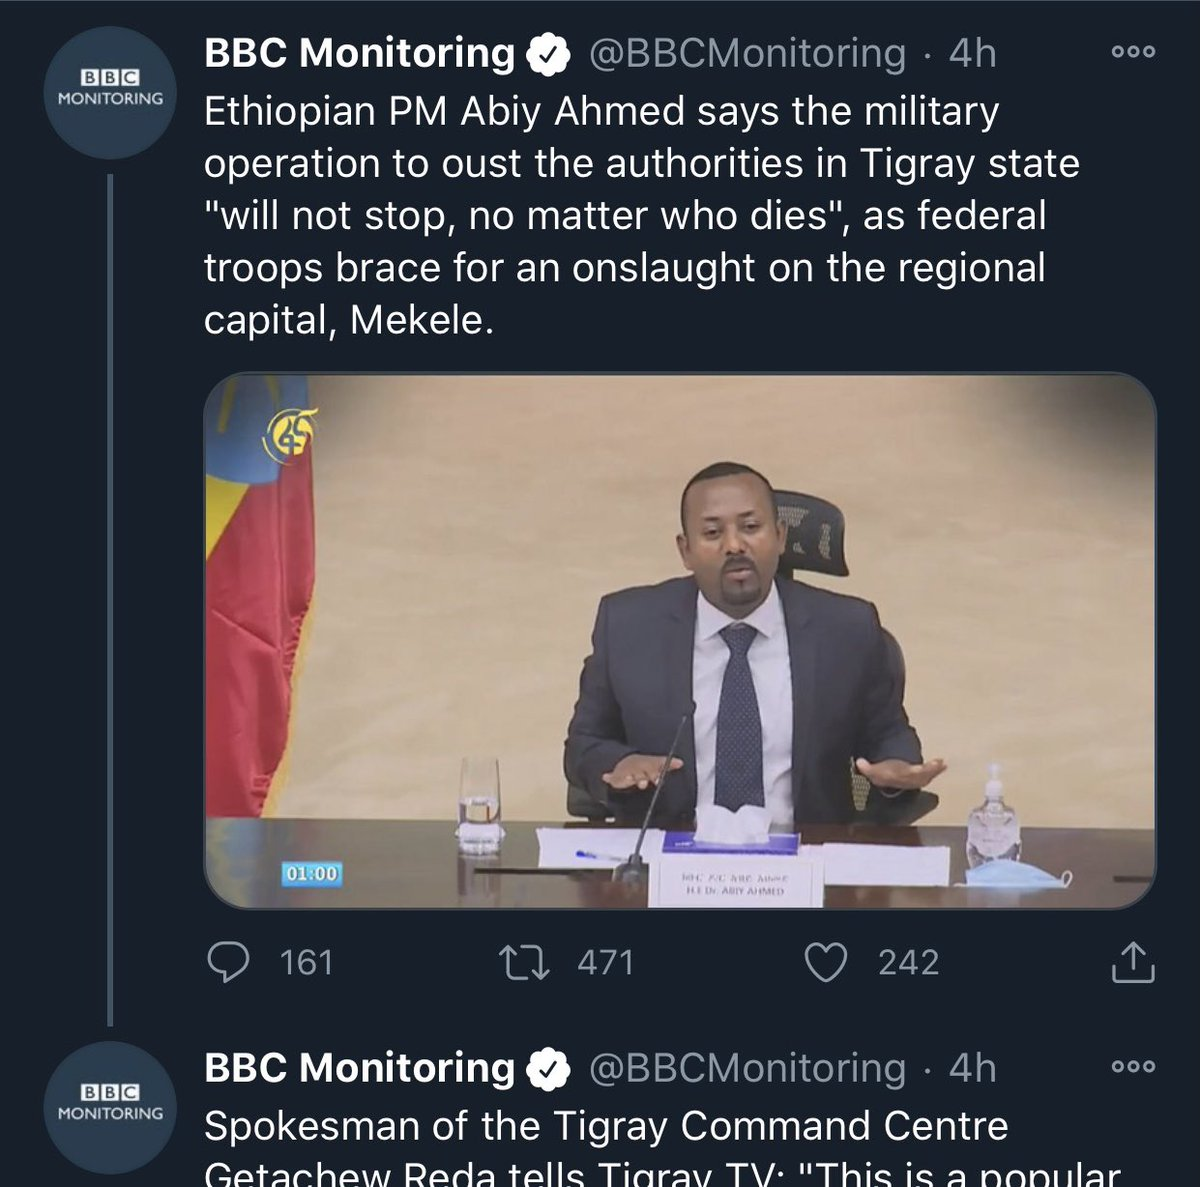 We would like to alert all that PM @AbiyAhmedAli has never said these quoted words and hold @BBCMonitoring responsible for spreading disinformation. The tweet has been deleted 4 hours after spreading something that was never said. @BBCWorld https://t.co/VPVeVQZRRg